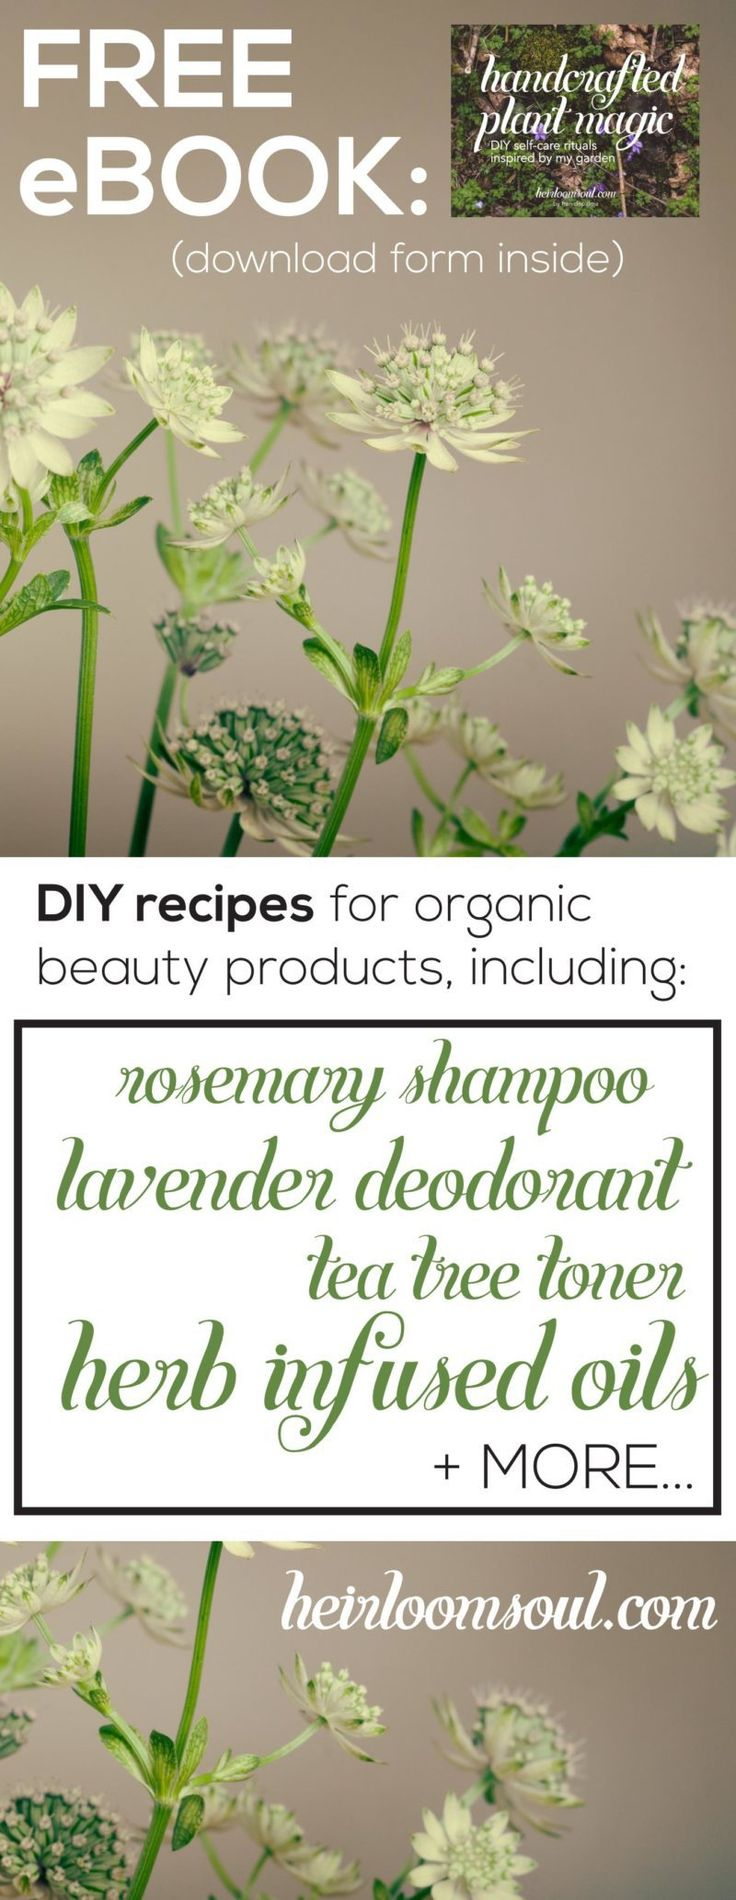 """FREE ebook! """"Handcrafted Plant Magic"""" - Easy DIY bath & beauty product recipes that are completely natural and organic - banish toxins from your daily routine for good! - Handcrafted Plant Magic - DIY Self-Care Rituals Inspired by My Garden - Free Ebook!   Heirloomsoul.com"""